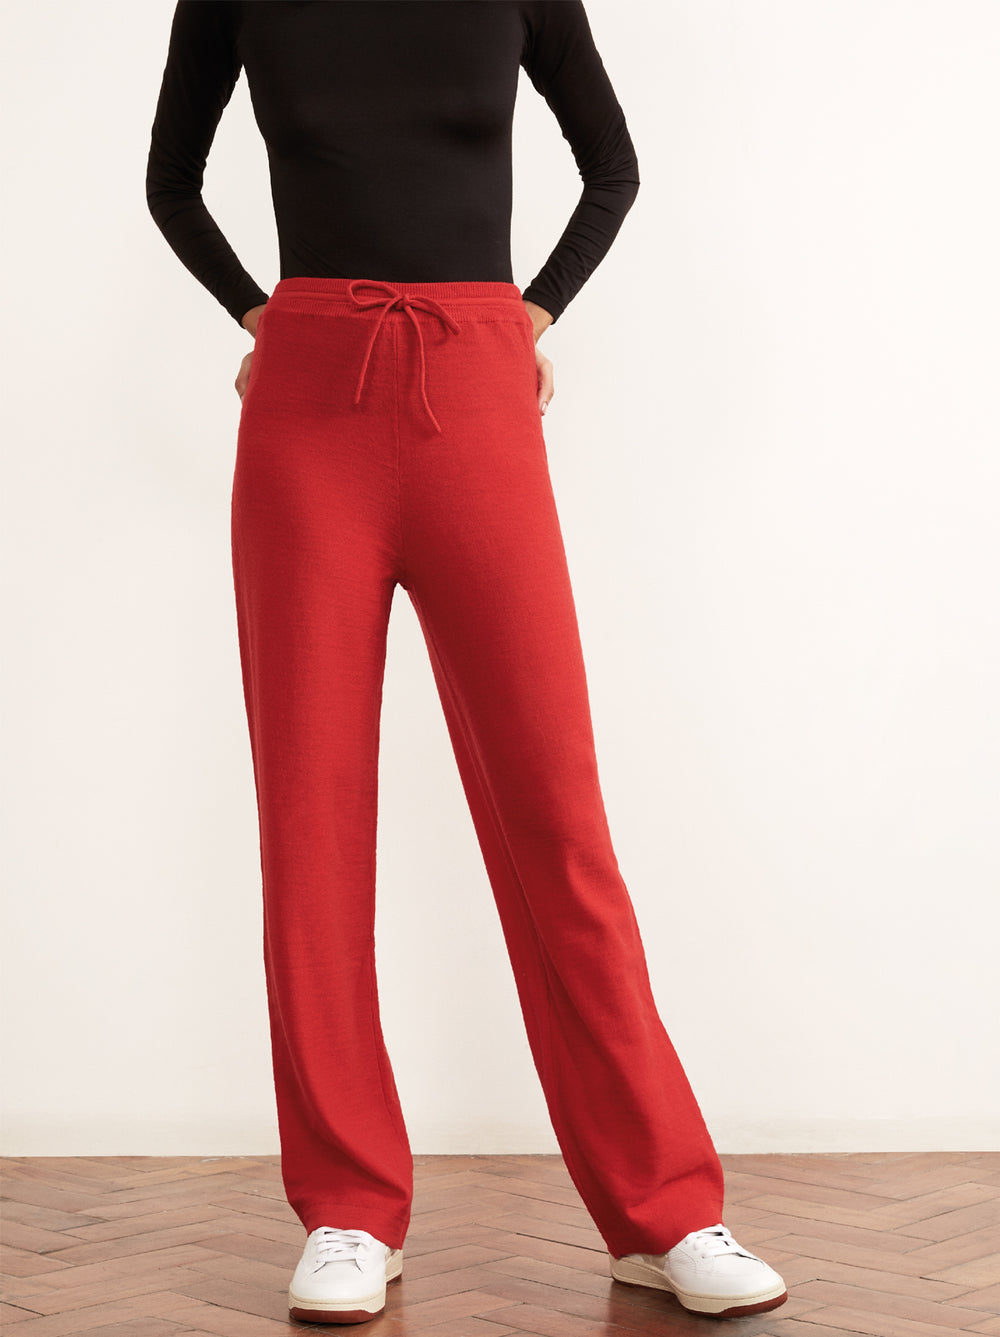 Matilda Red Merino Wool Trousers by KITRI Studio